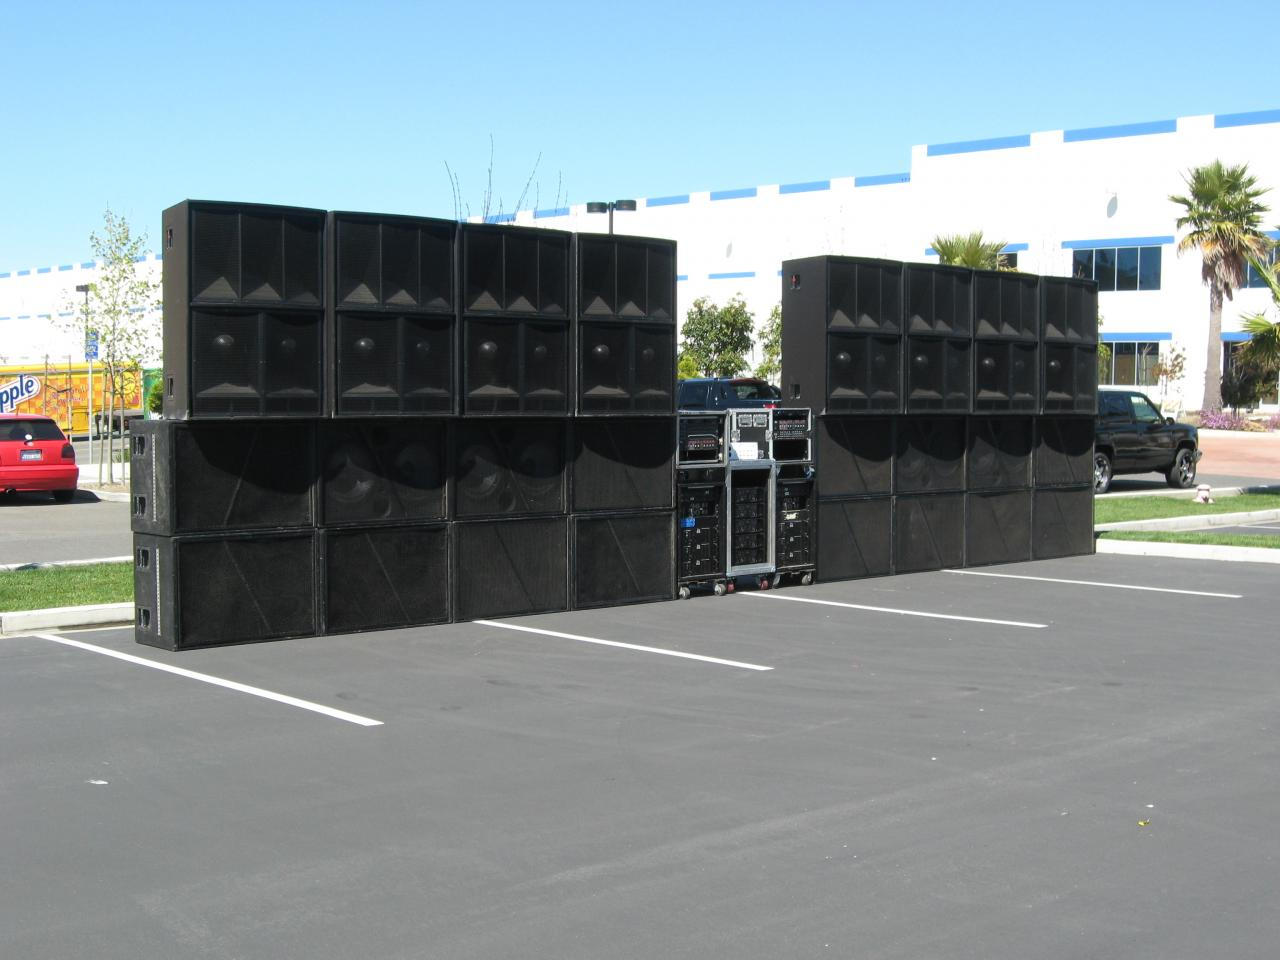 Stage Lights And Sound Rentals U0026 Production Services   Audio Rental Bay  Area San FranciscoLive Sound Equipment Rentals Audio Equipment Rental  Offering Audio ...